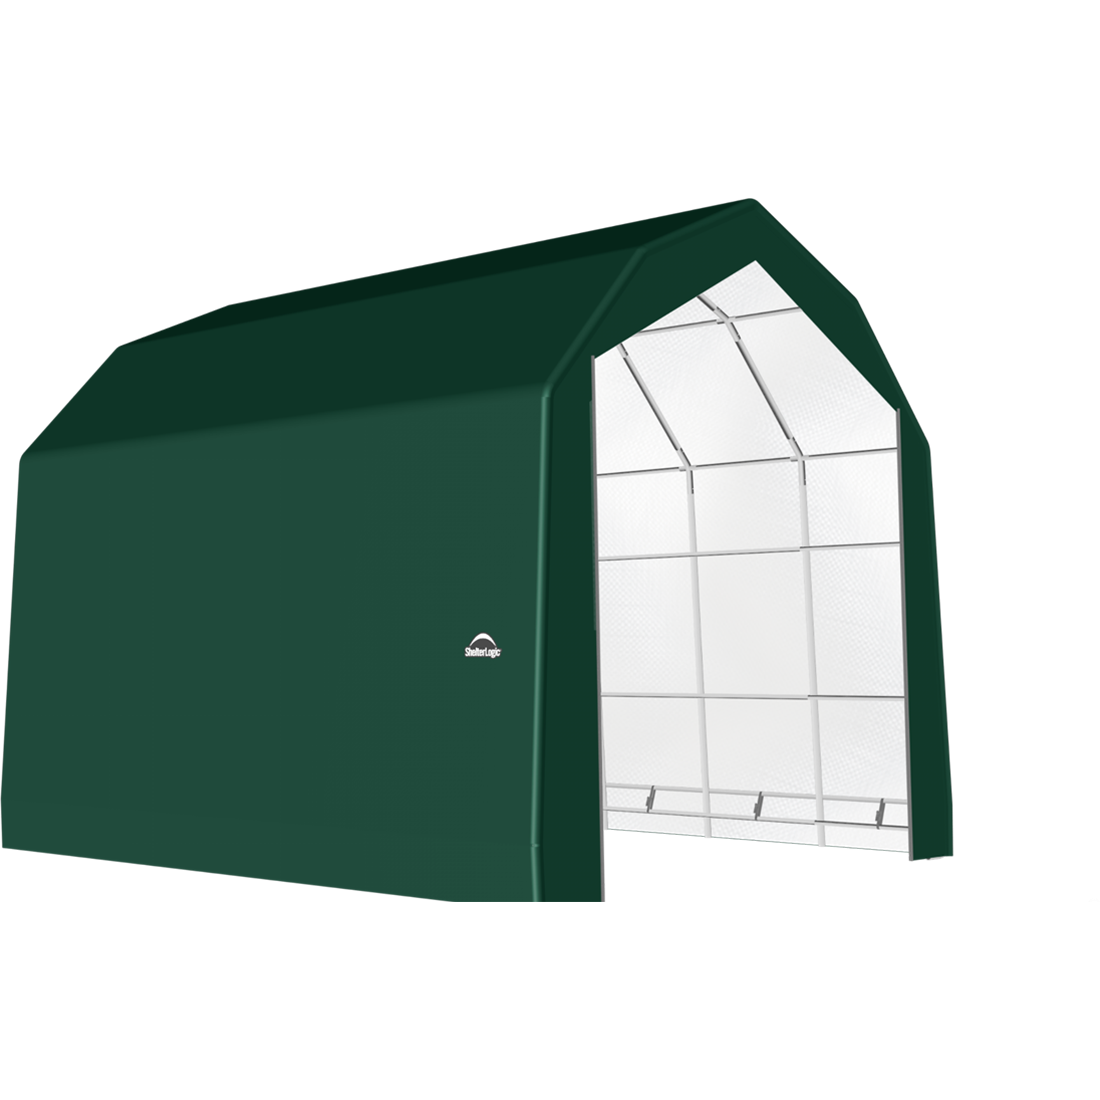 SP Barn 20X28X18 Green 14 oz PE Shelter